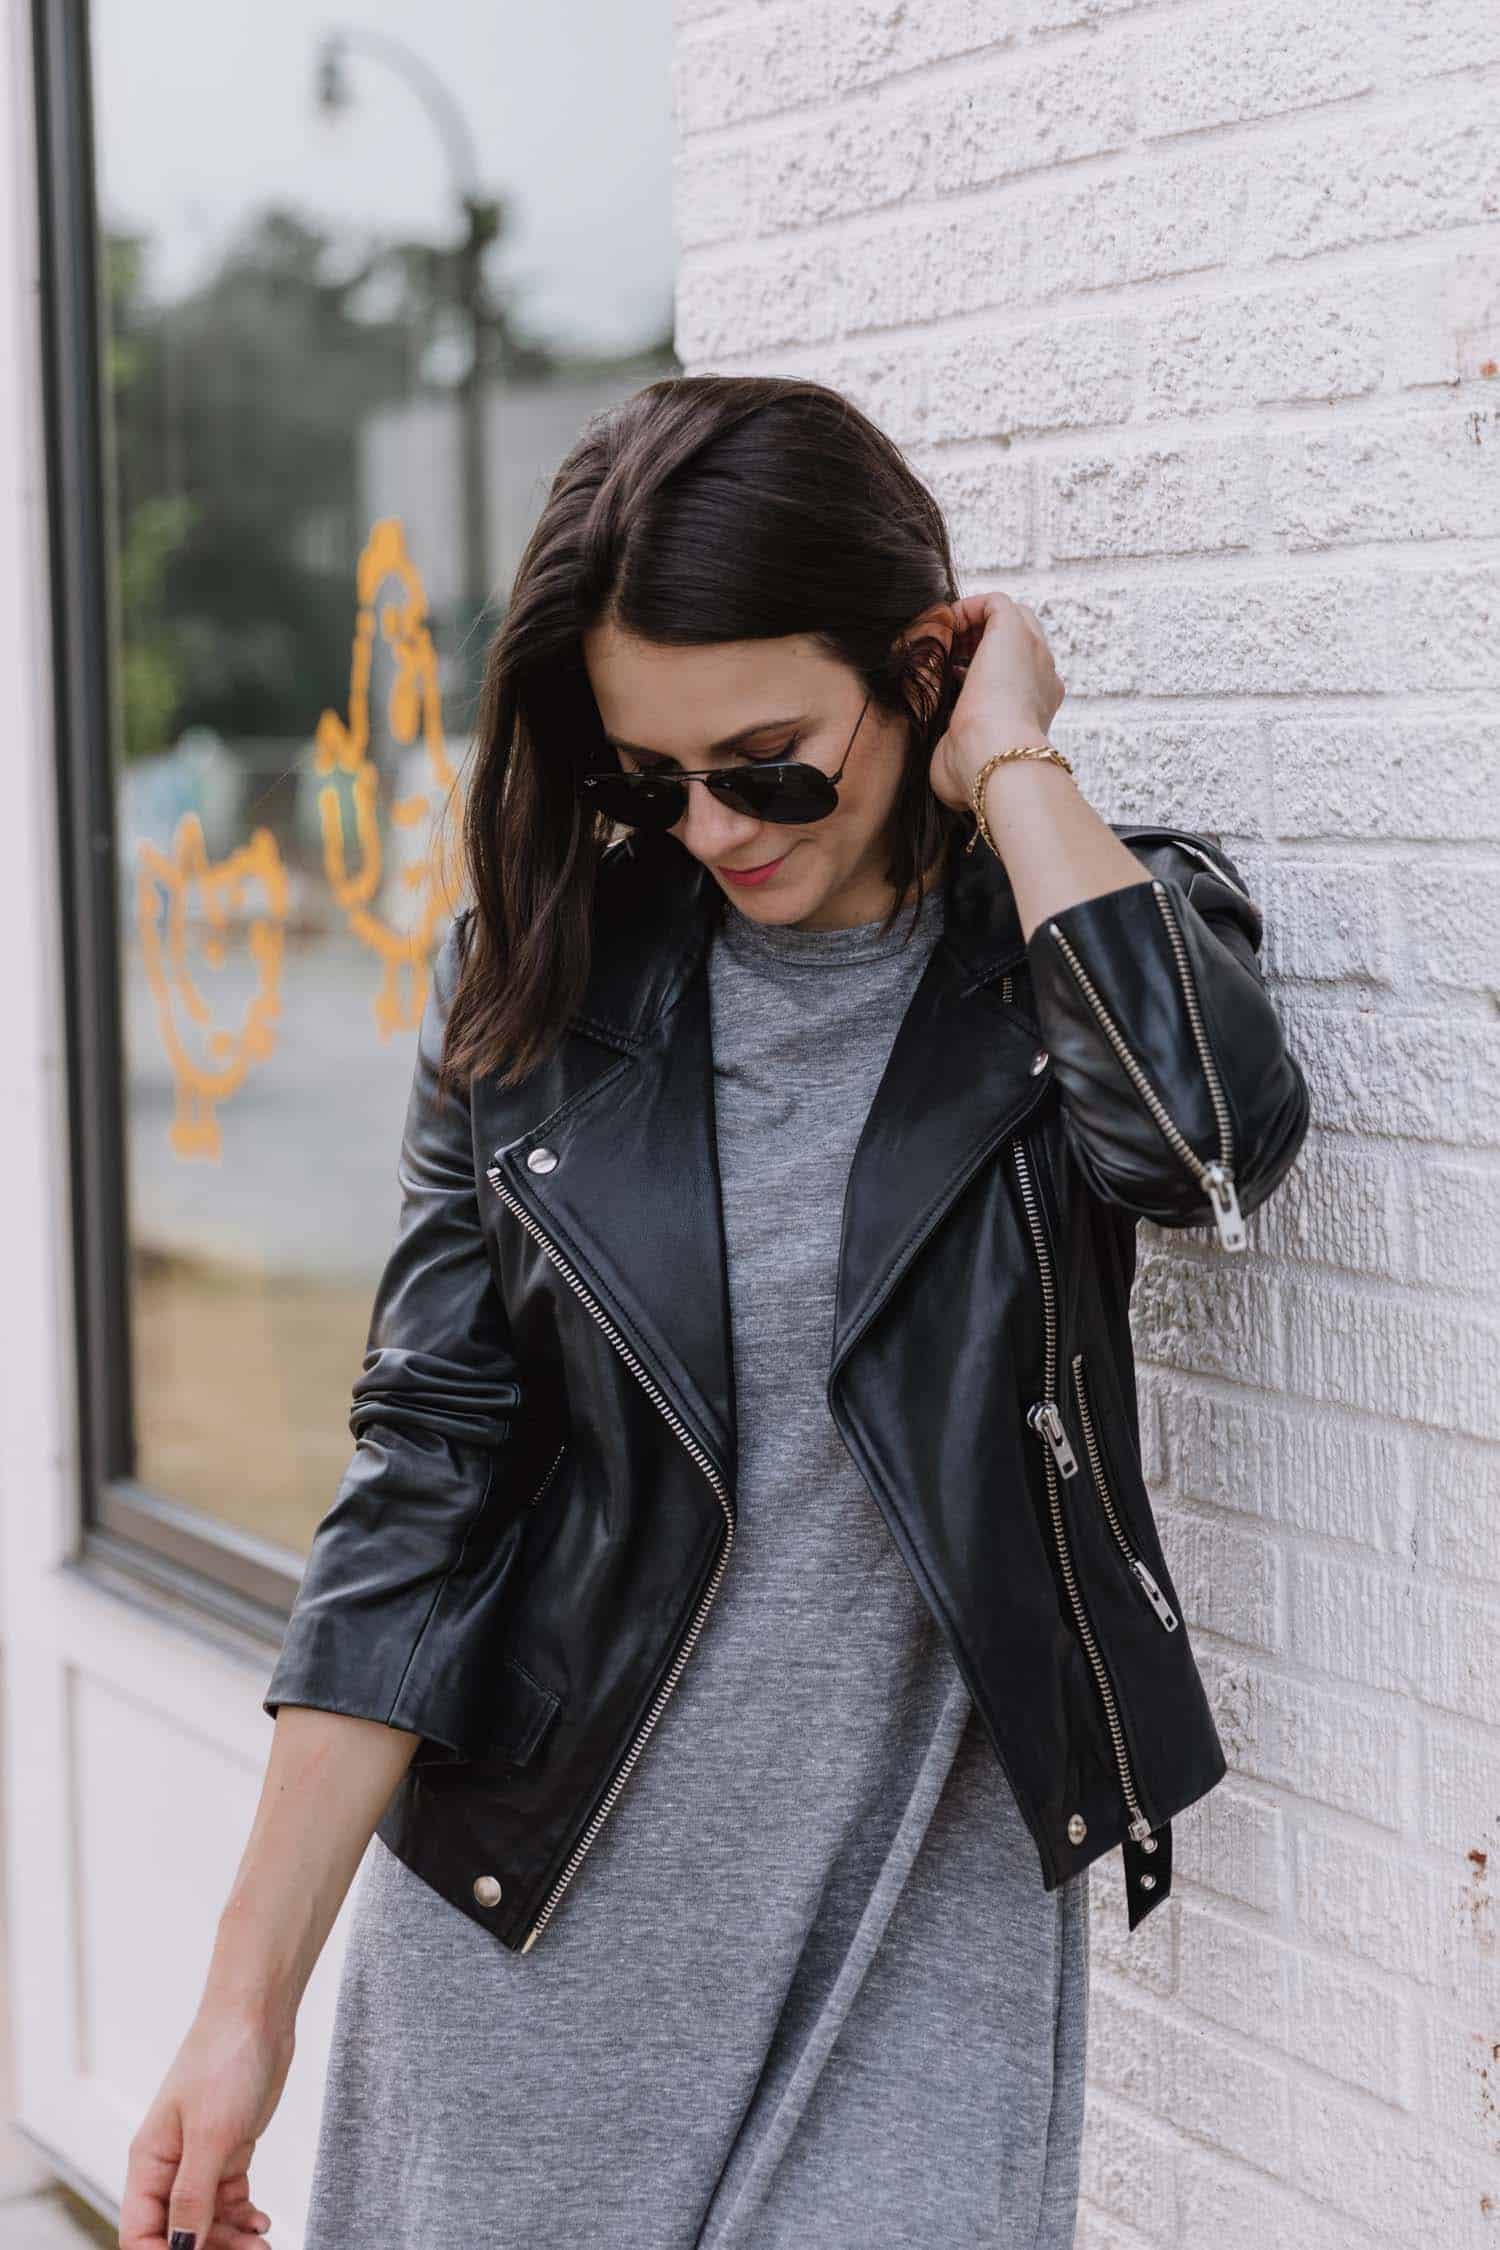 leather jacket and a grey t-shirt dress